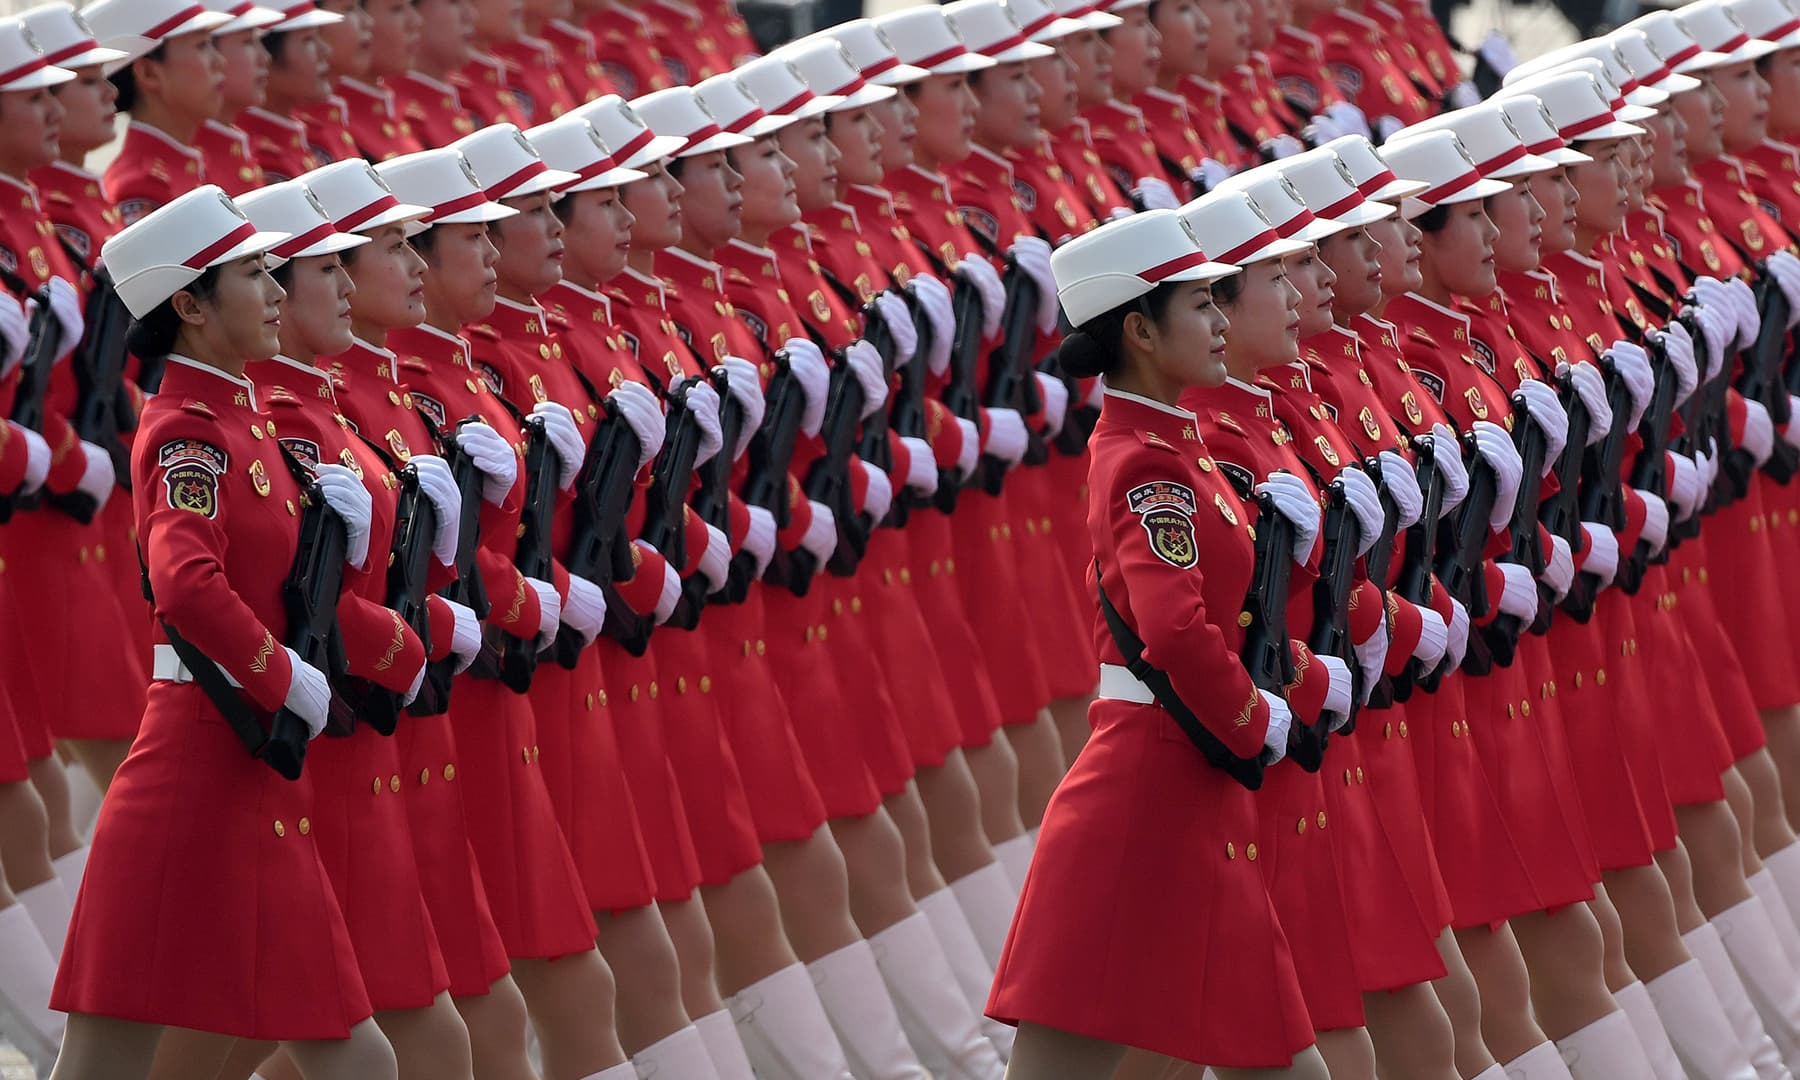 Chinese People's Liberation Army personnel participate in a military parade at Tiananmen Square in Beijing. — AFP